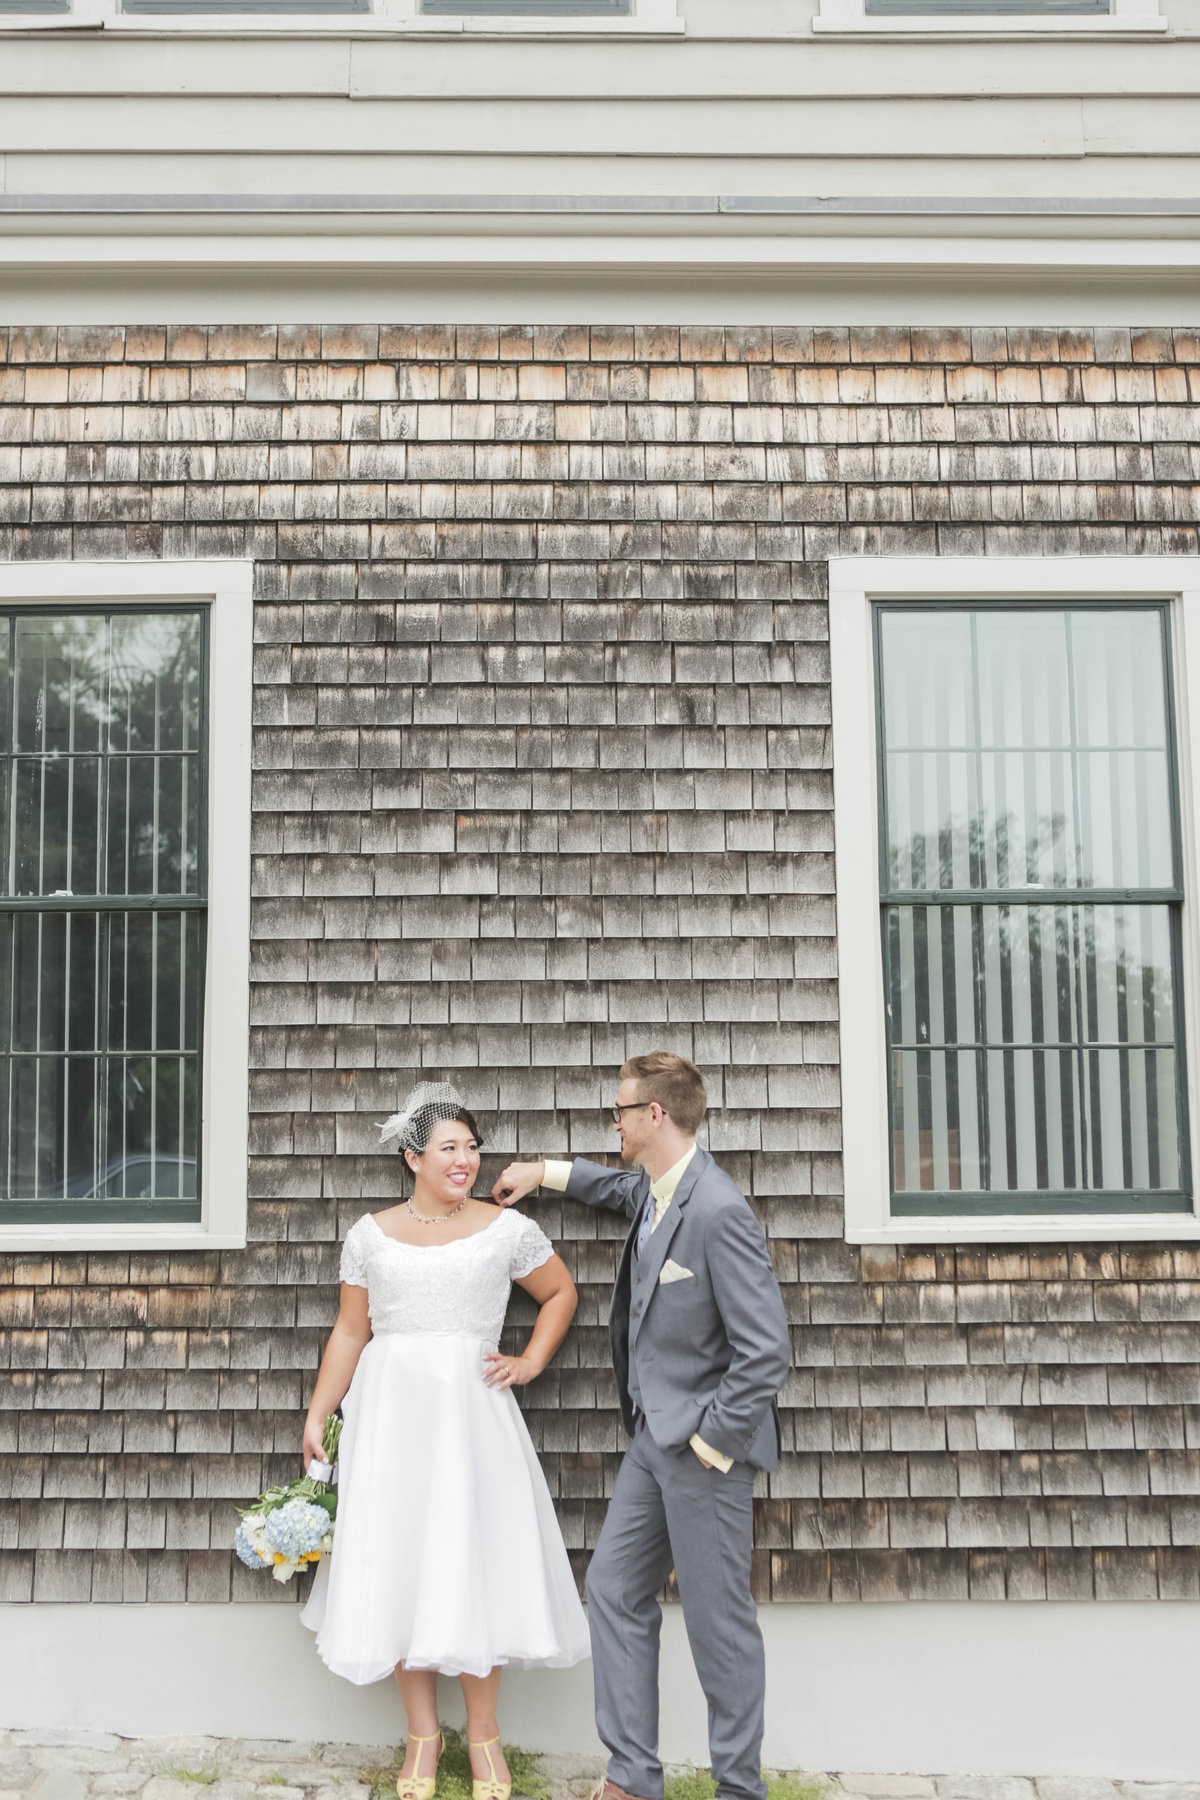 new_bedford_whaling_museum_wedding_boston_wedding_photographerGideon3month20150822ir-4O6A9982171033